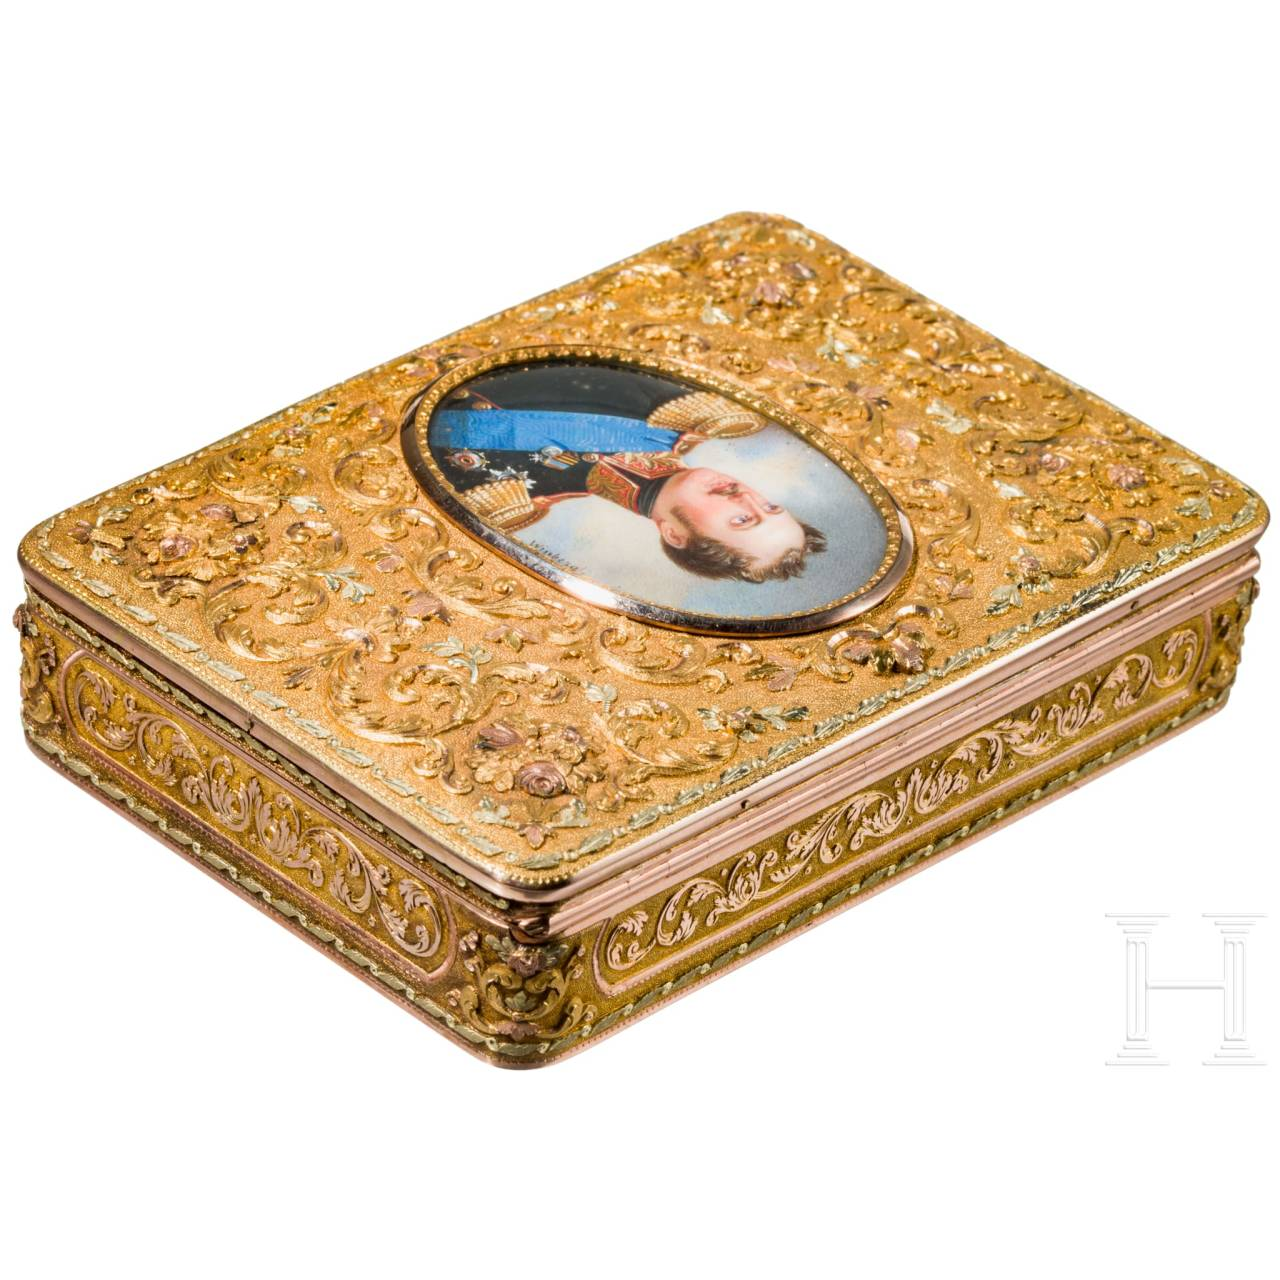 A splendid gold snuffbox with the miniature portrait of Tsar Nicholas I, personal gift from the Tsar, master of miniatures Ivan Winberg (1798 – 1851), circa 1825/35